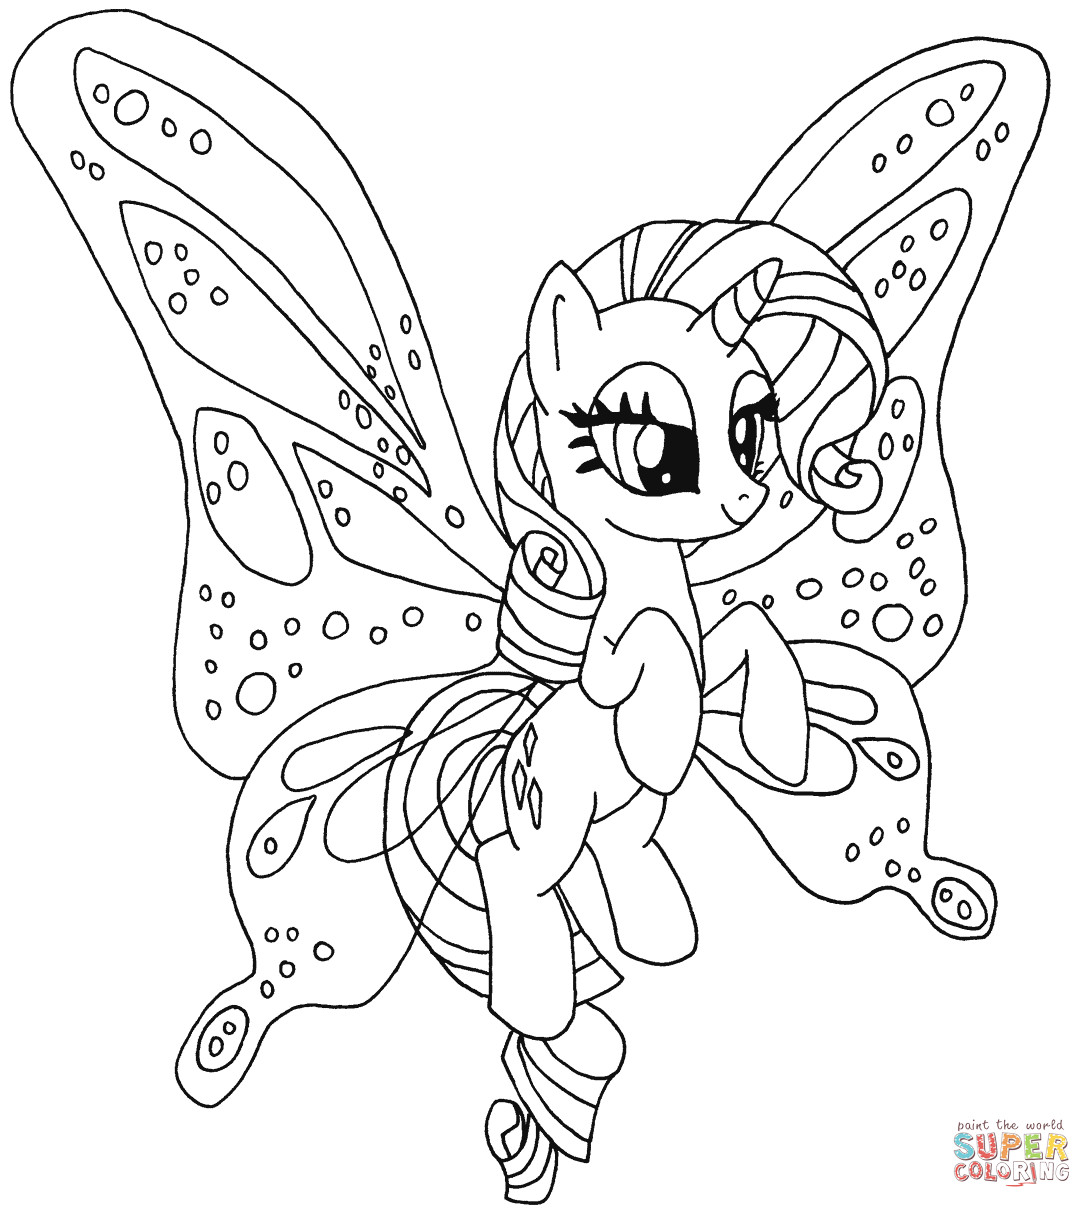 Best ideas about Pony Printable Coloring Pages . Save or Pin Rarity Pony coloring page Now.